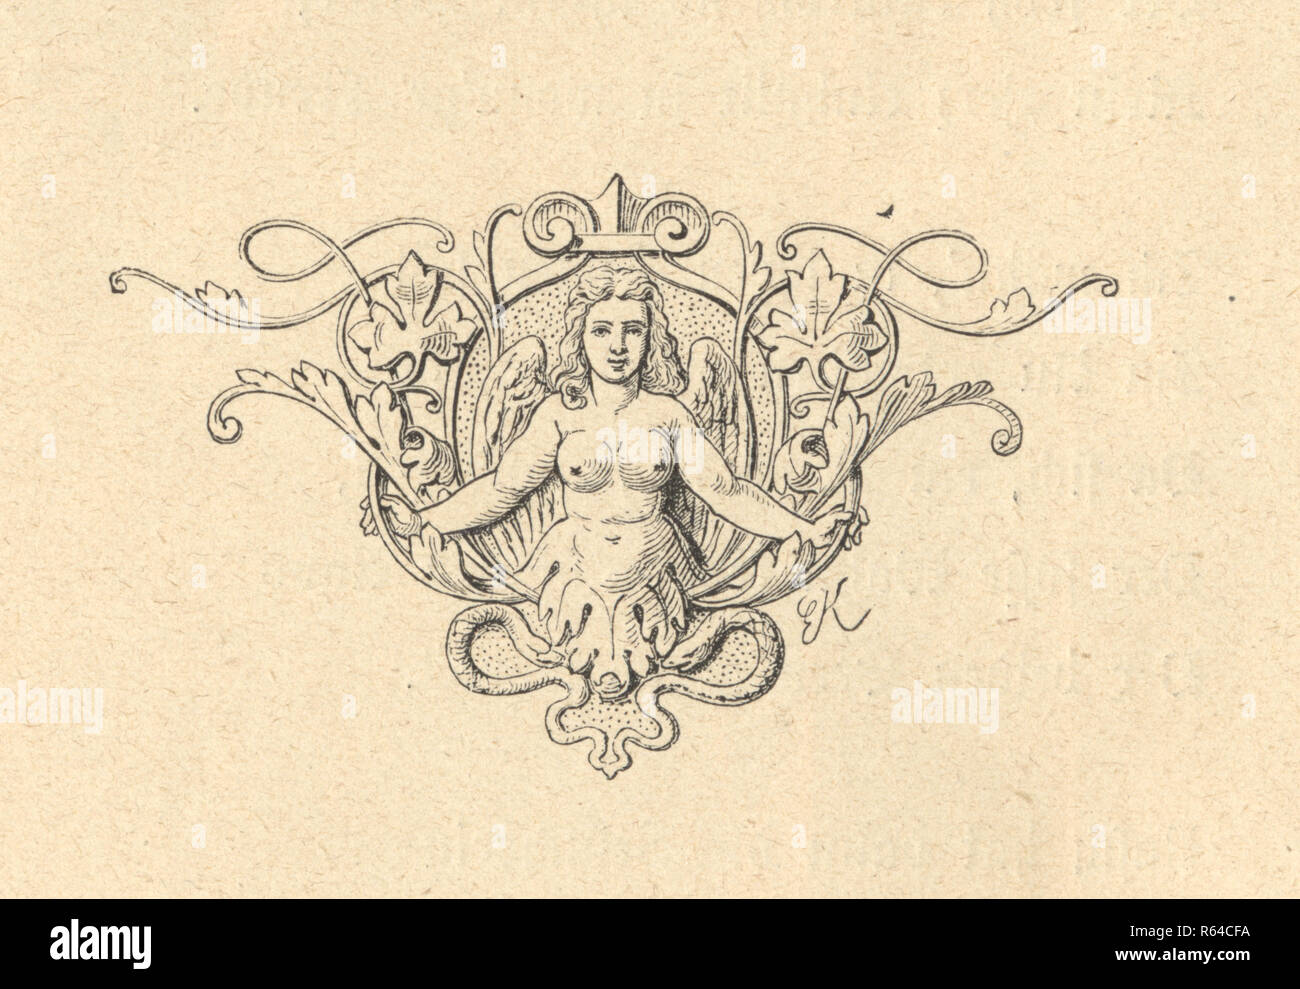 Vintage engraving of a Classical style design element ogf a woman - Stock Image